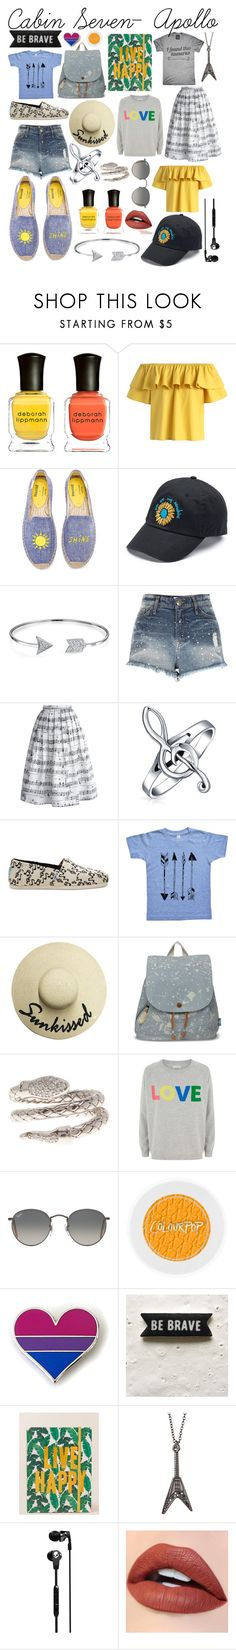 """""""Cabin Seven, Apollo- PJO Characters 7/?"""" by nle10 ❤ liked on Polyvore featuring Deborah Lippmann, Chicwish, Soludos, Love This Life, Bling Jewelry, River Island, TOMS, American Apparel, Savvy Cie and Chinti and Parker"""